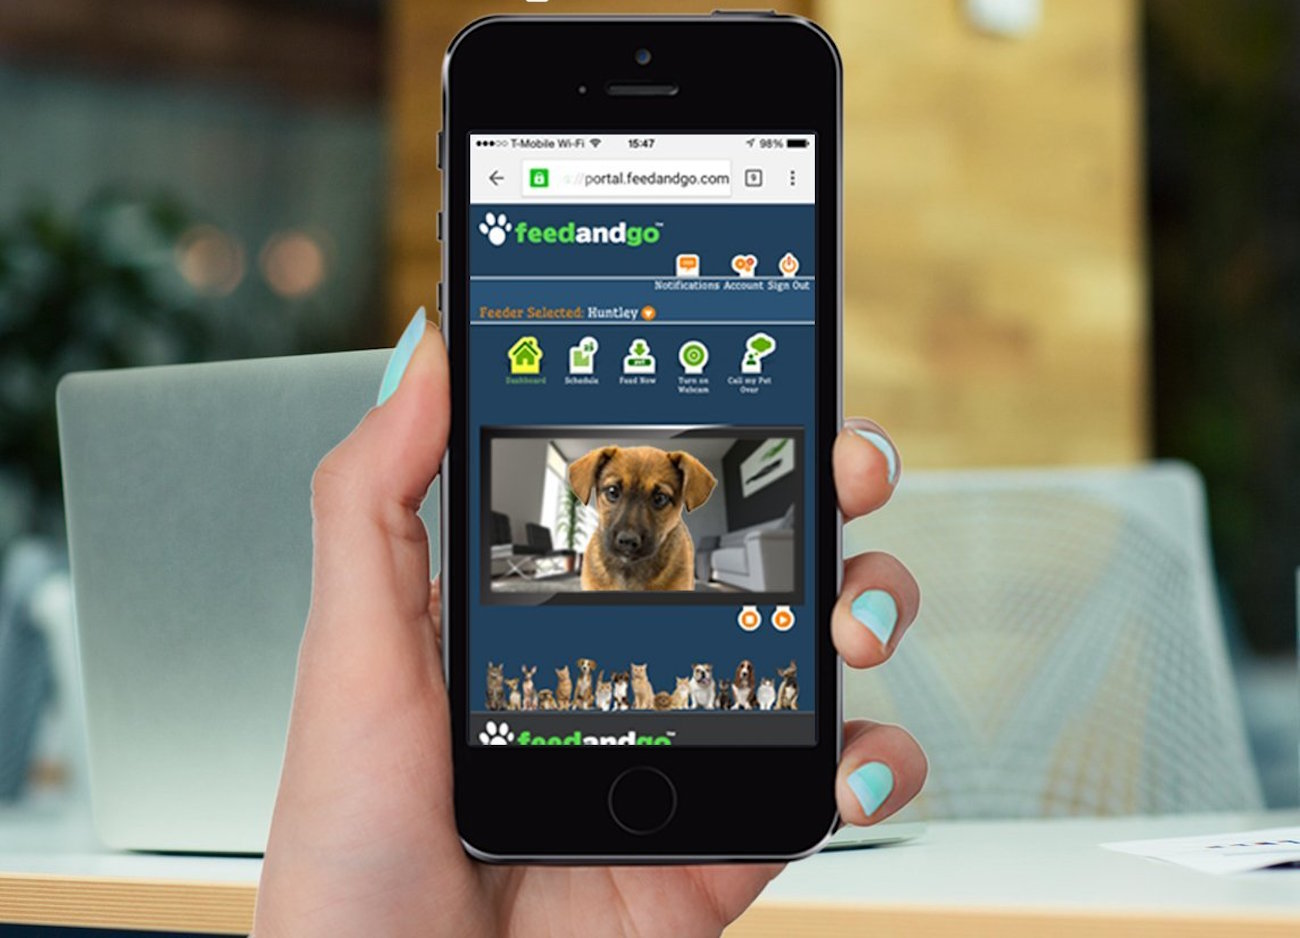 vision smart way night camera feeder dog ios feeding for audio two wifi lens android angle and app support store remotely product wide schedule pet